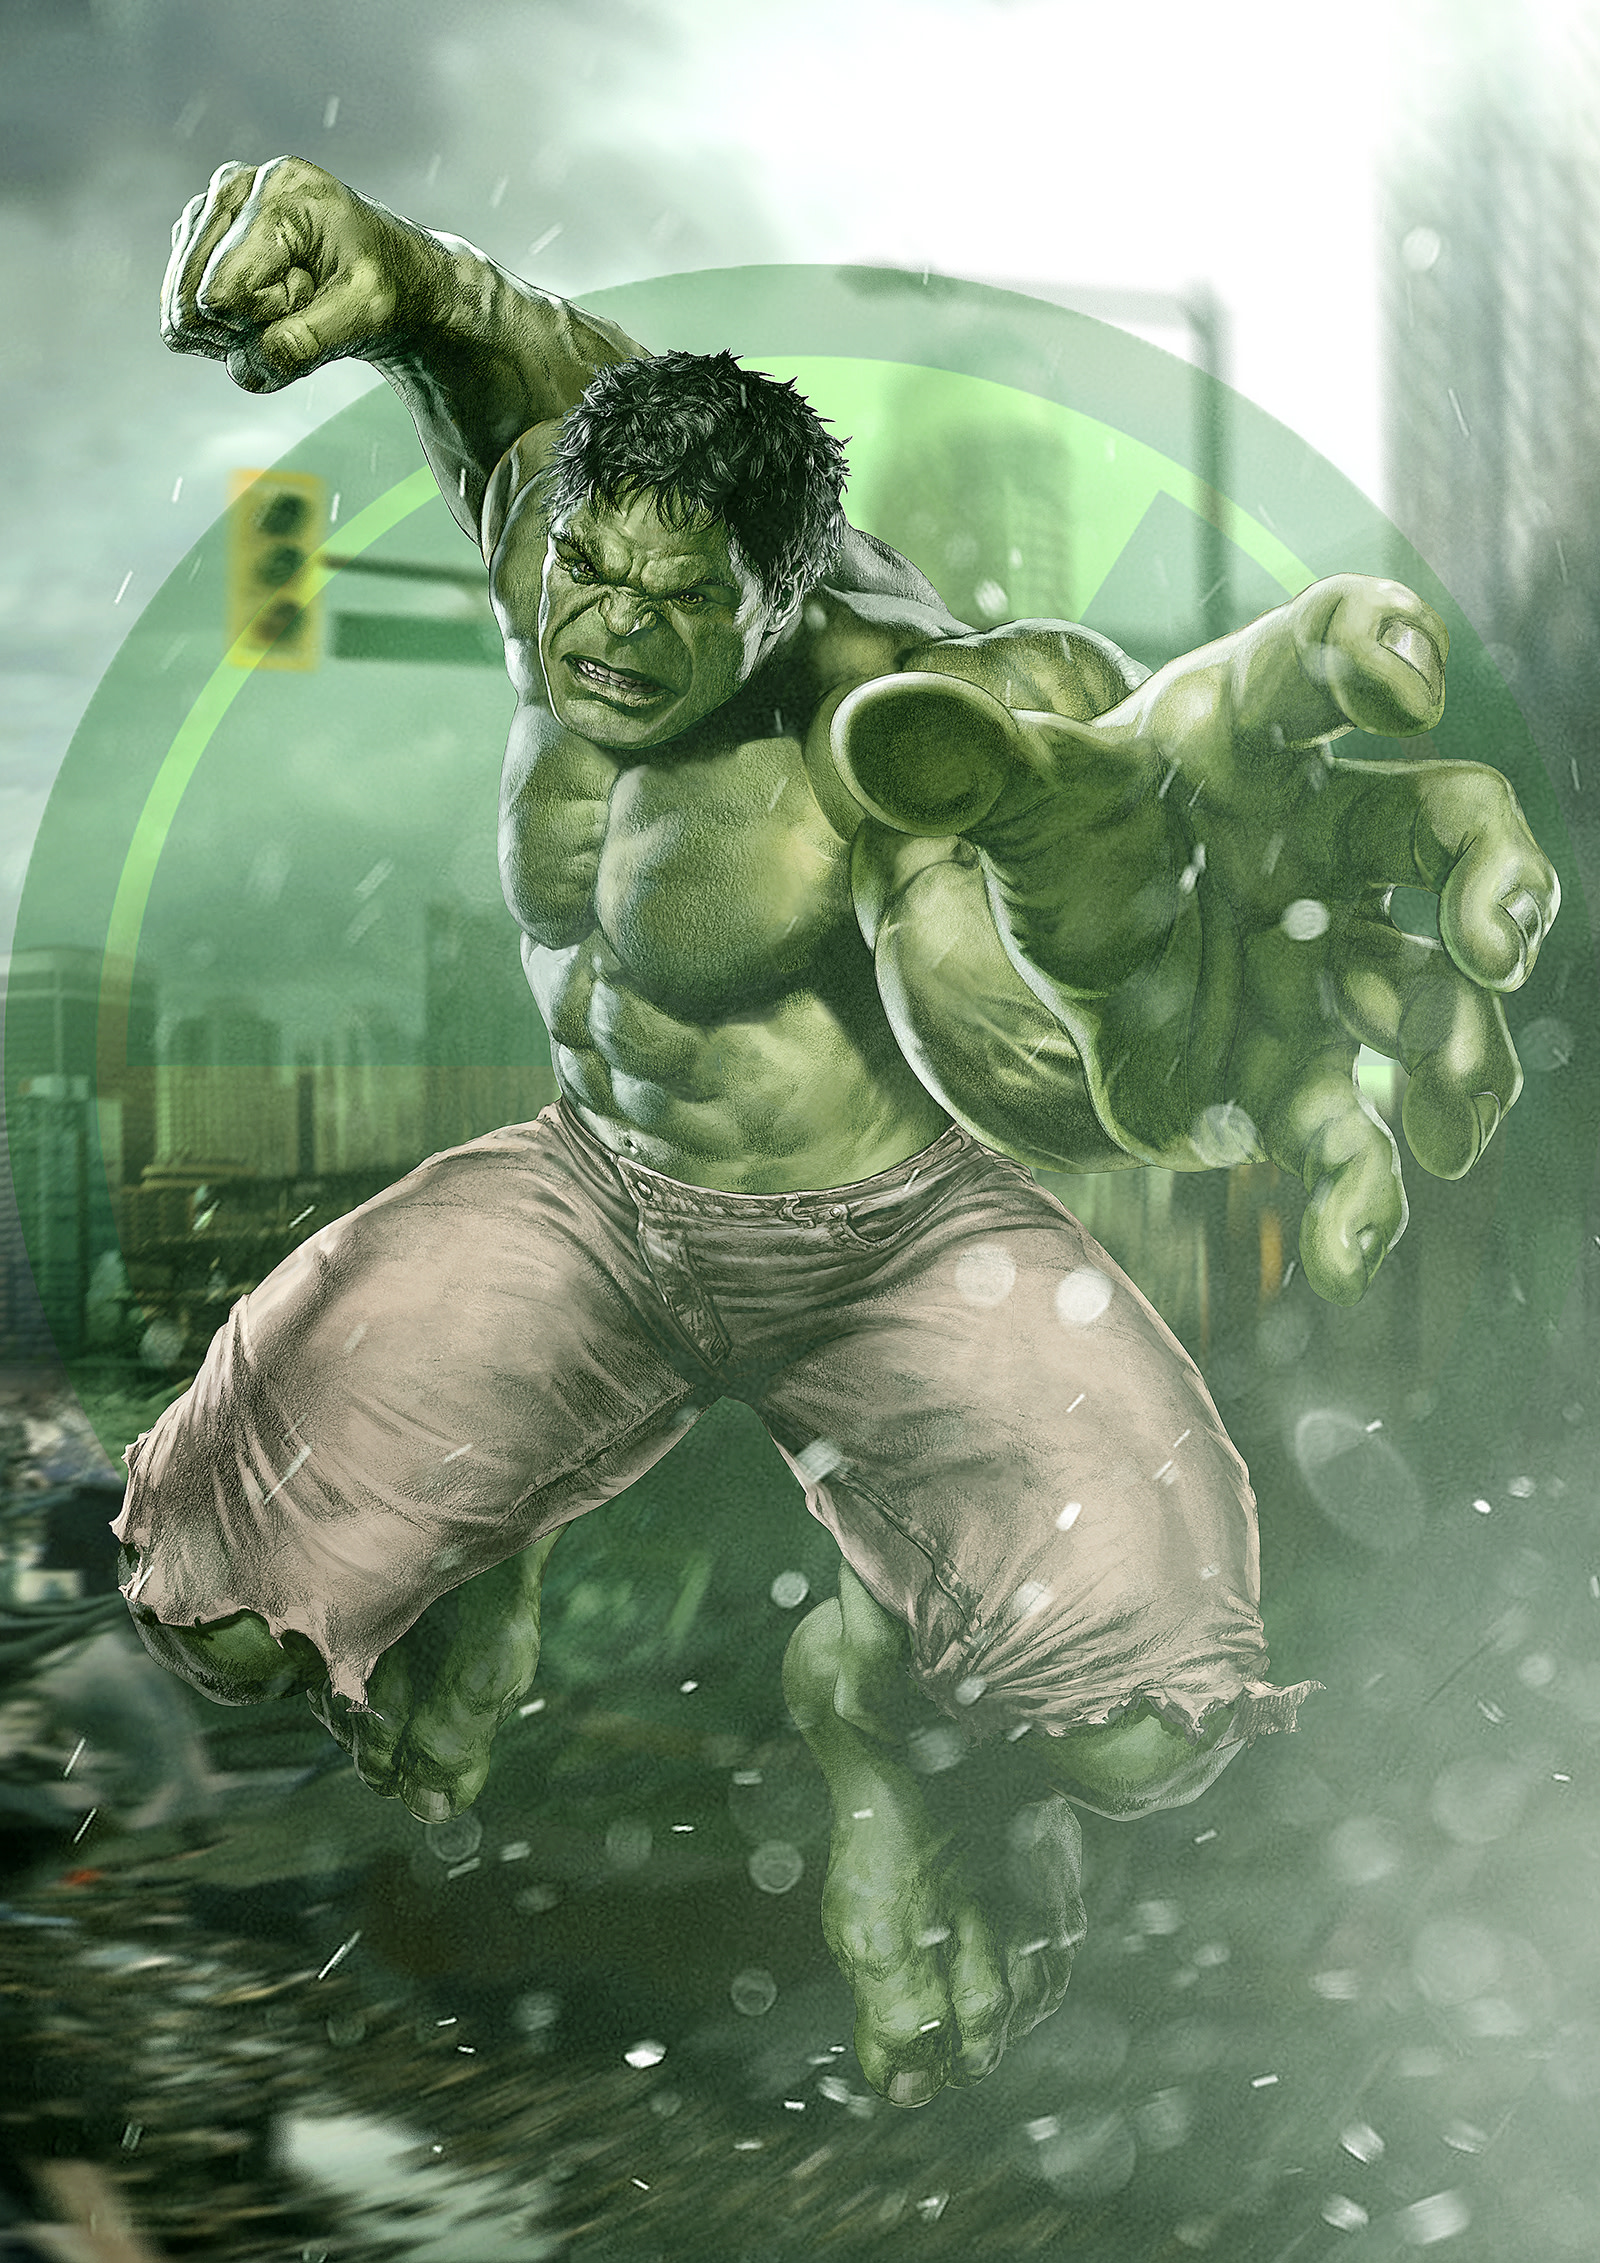 Pictures Of Hulk Smash : pictures, smash, Smash, Avengers